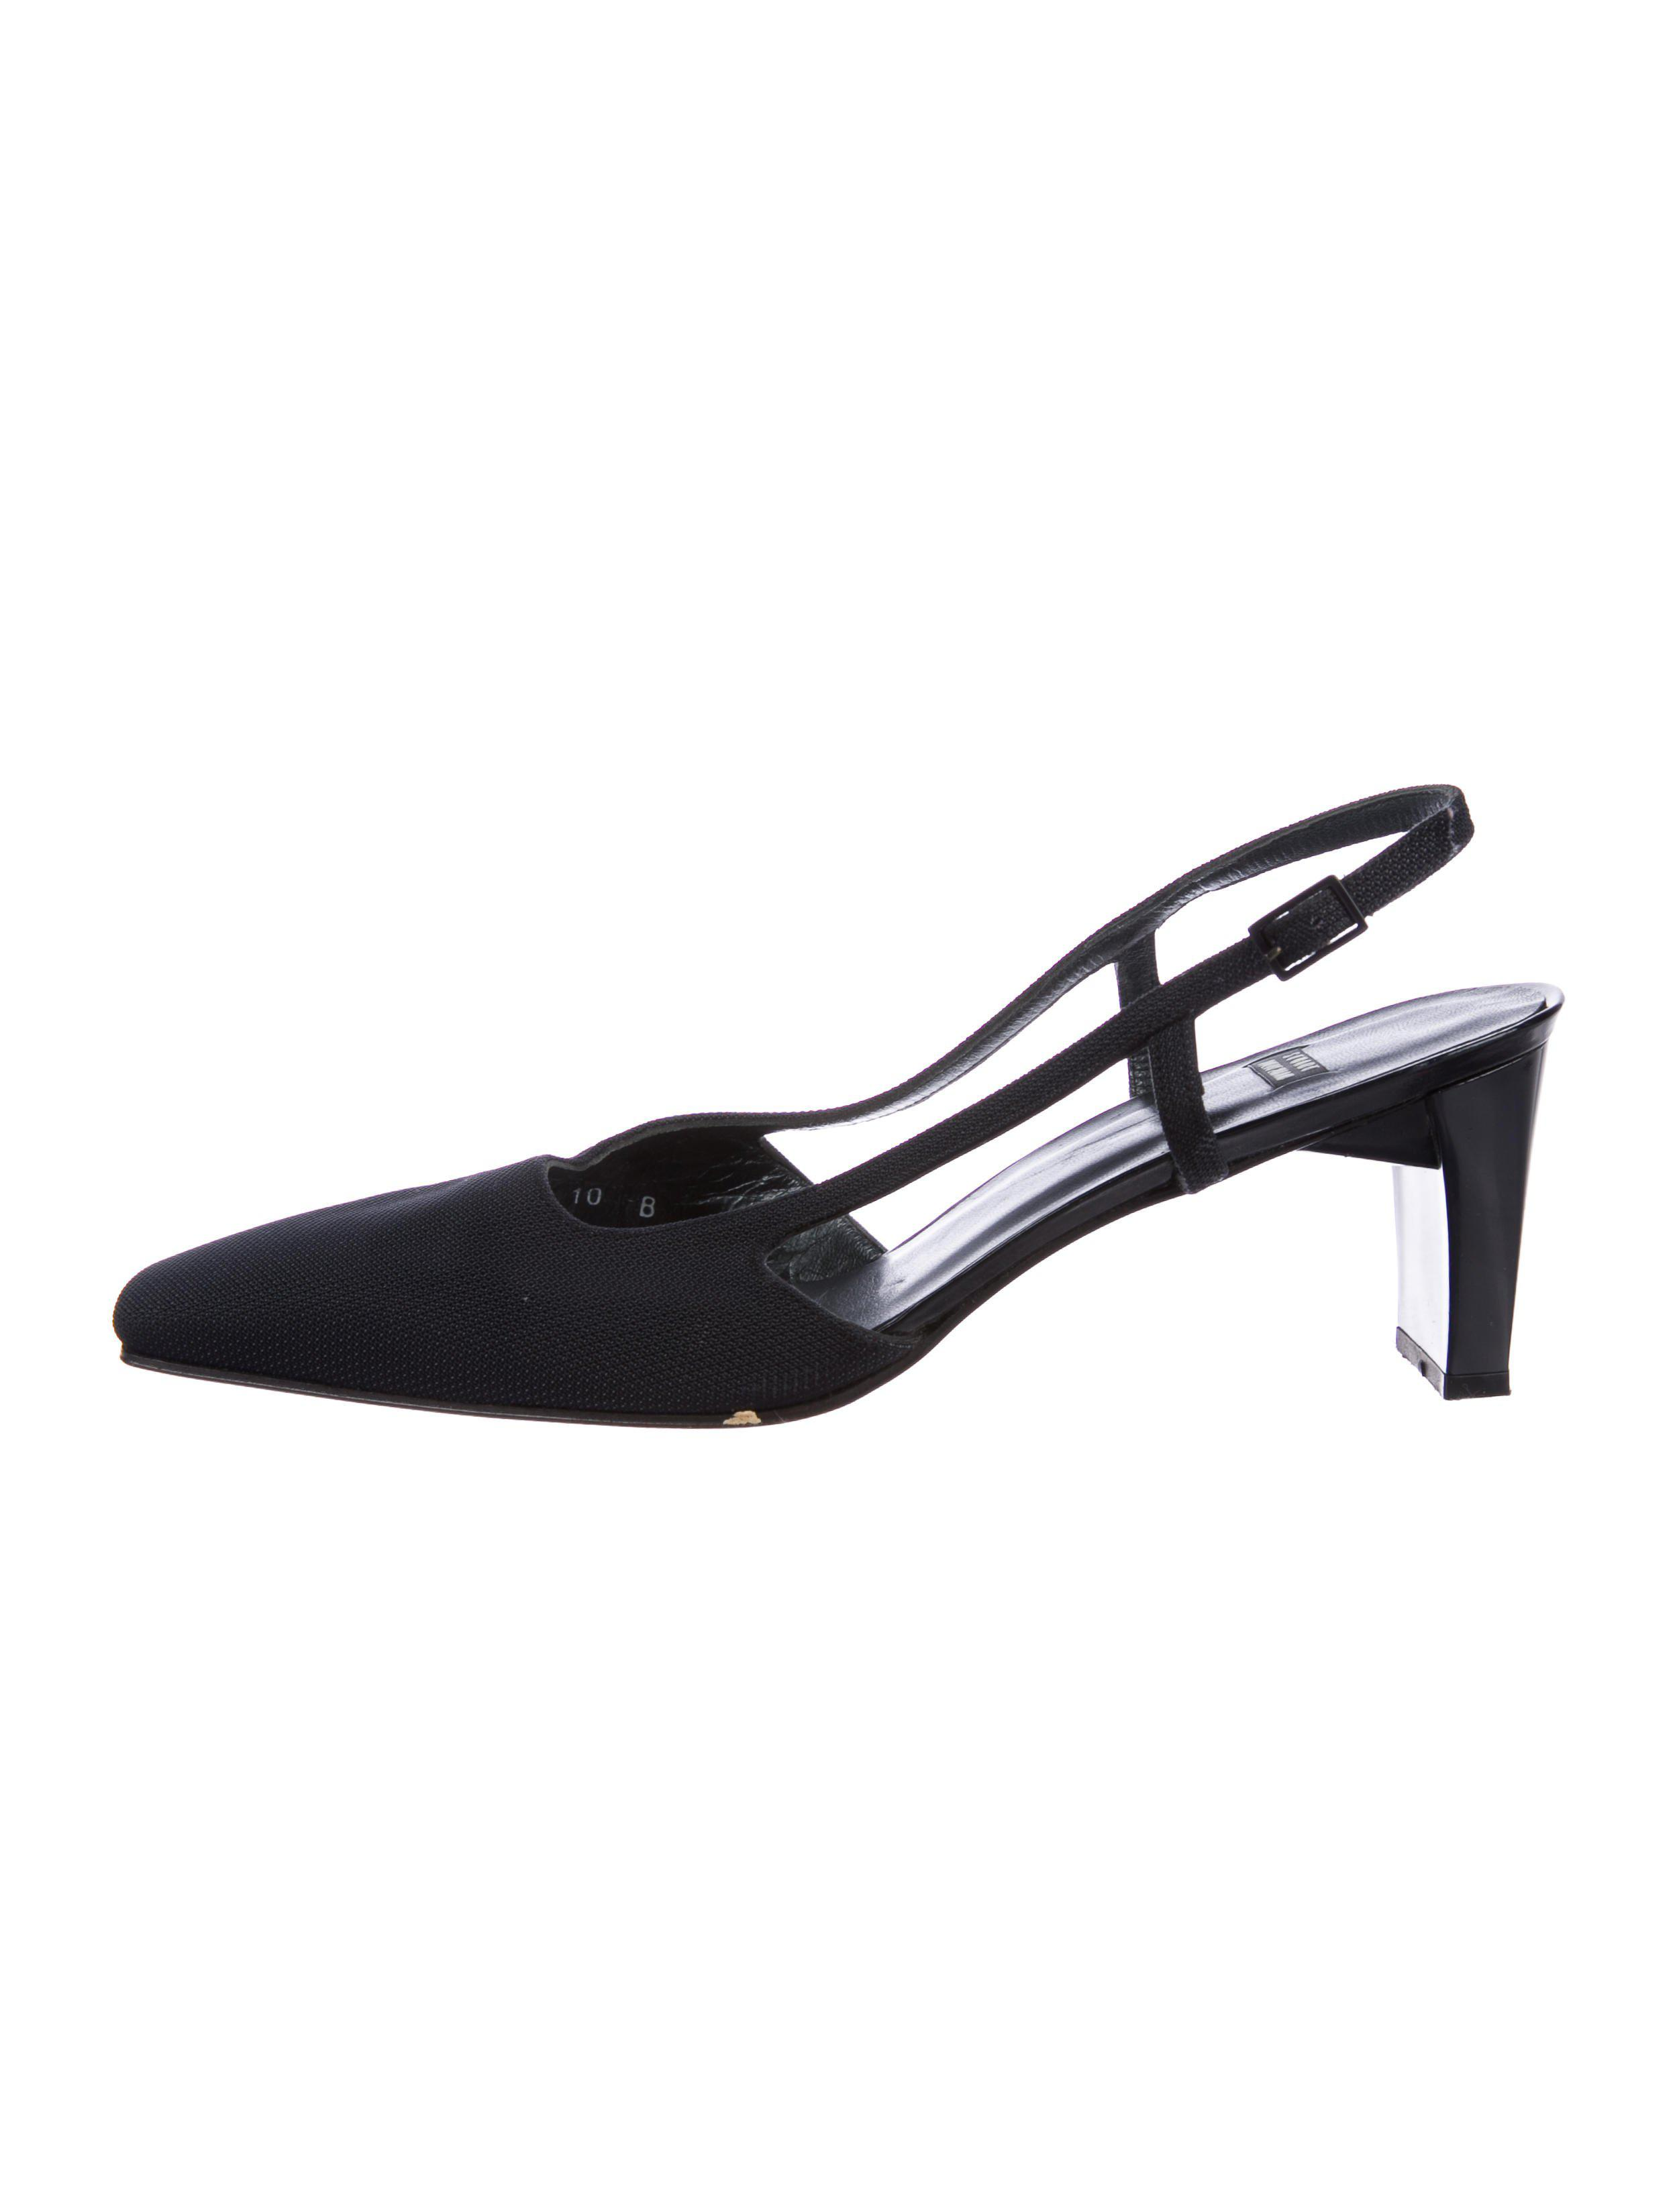 visa payment sale online Stuart Weitzman Canvas Slingback Pumps cheap sale real cheap choice outlet store for sale clearance from china nvFlC6KMRi